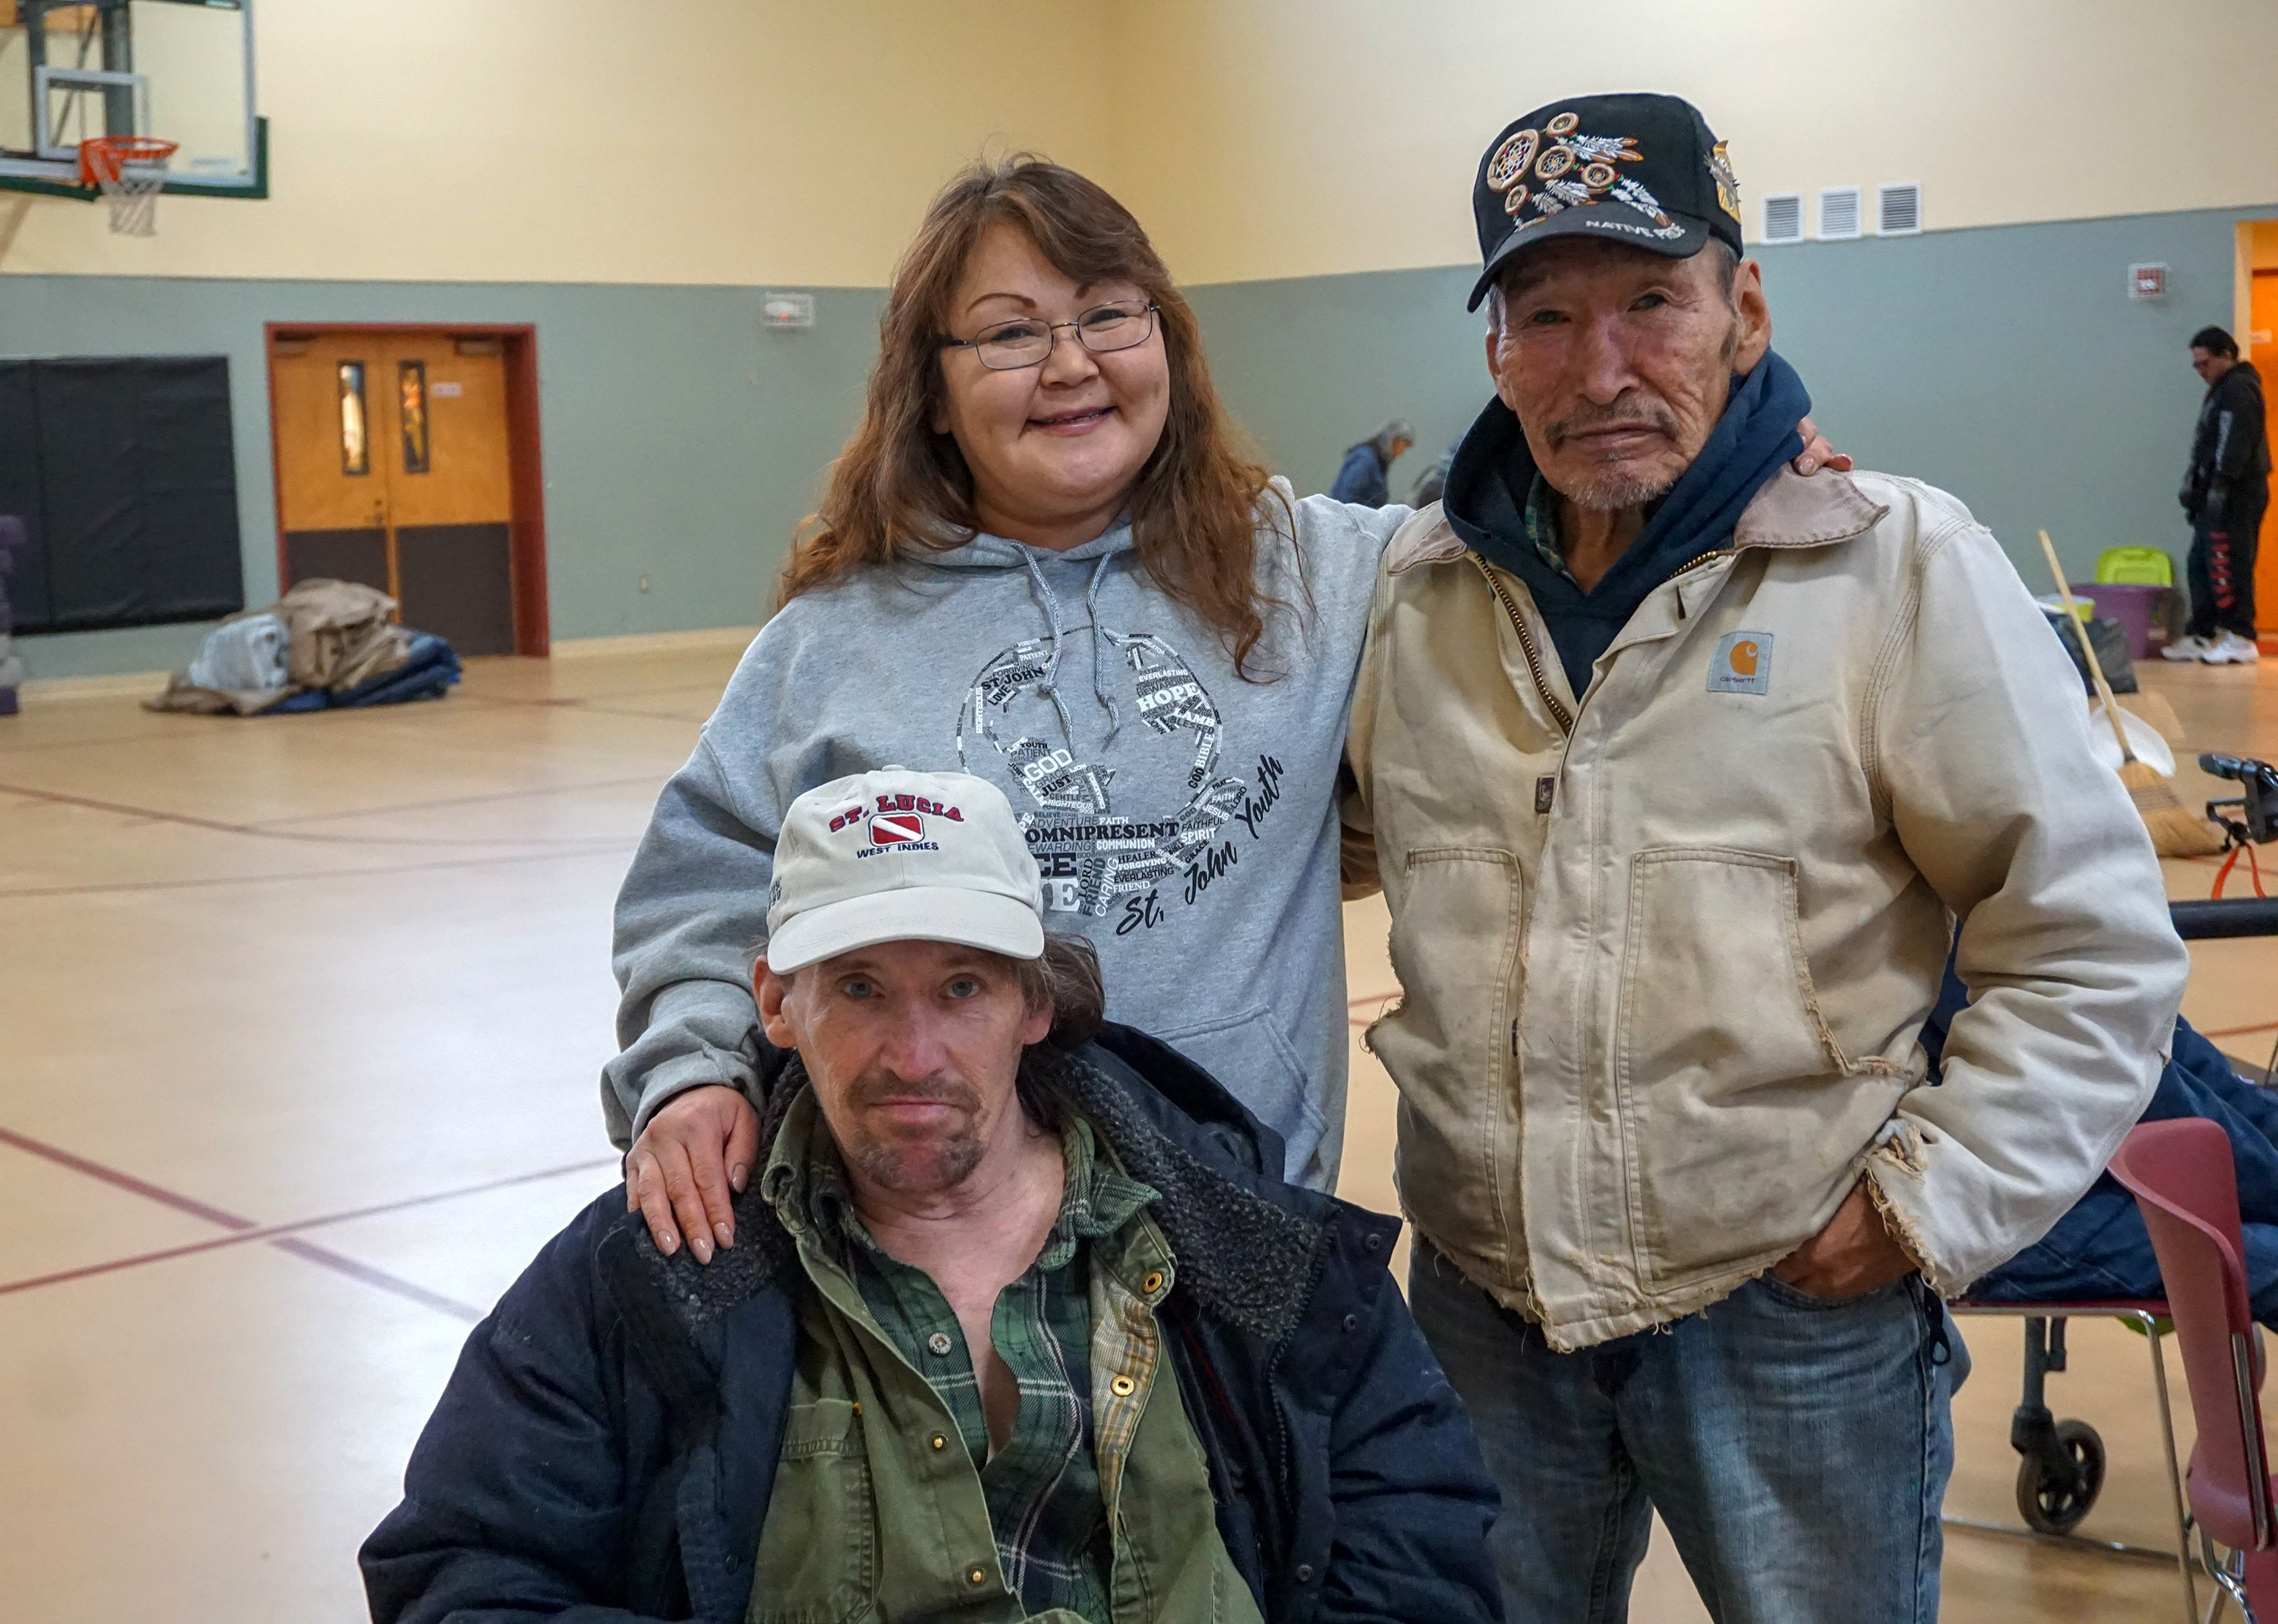 Betty Sanchez Sopcak (l), her husband Daniel (bottom), and her uncle James Sugar (r) take shelter with other residents of Karluk Manor at St. John United Methodist Church after the Nov. 30 earthquake. Photo by Anne Hillman, courtesy of Alaska Public Media.